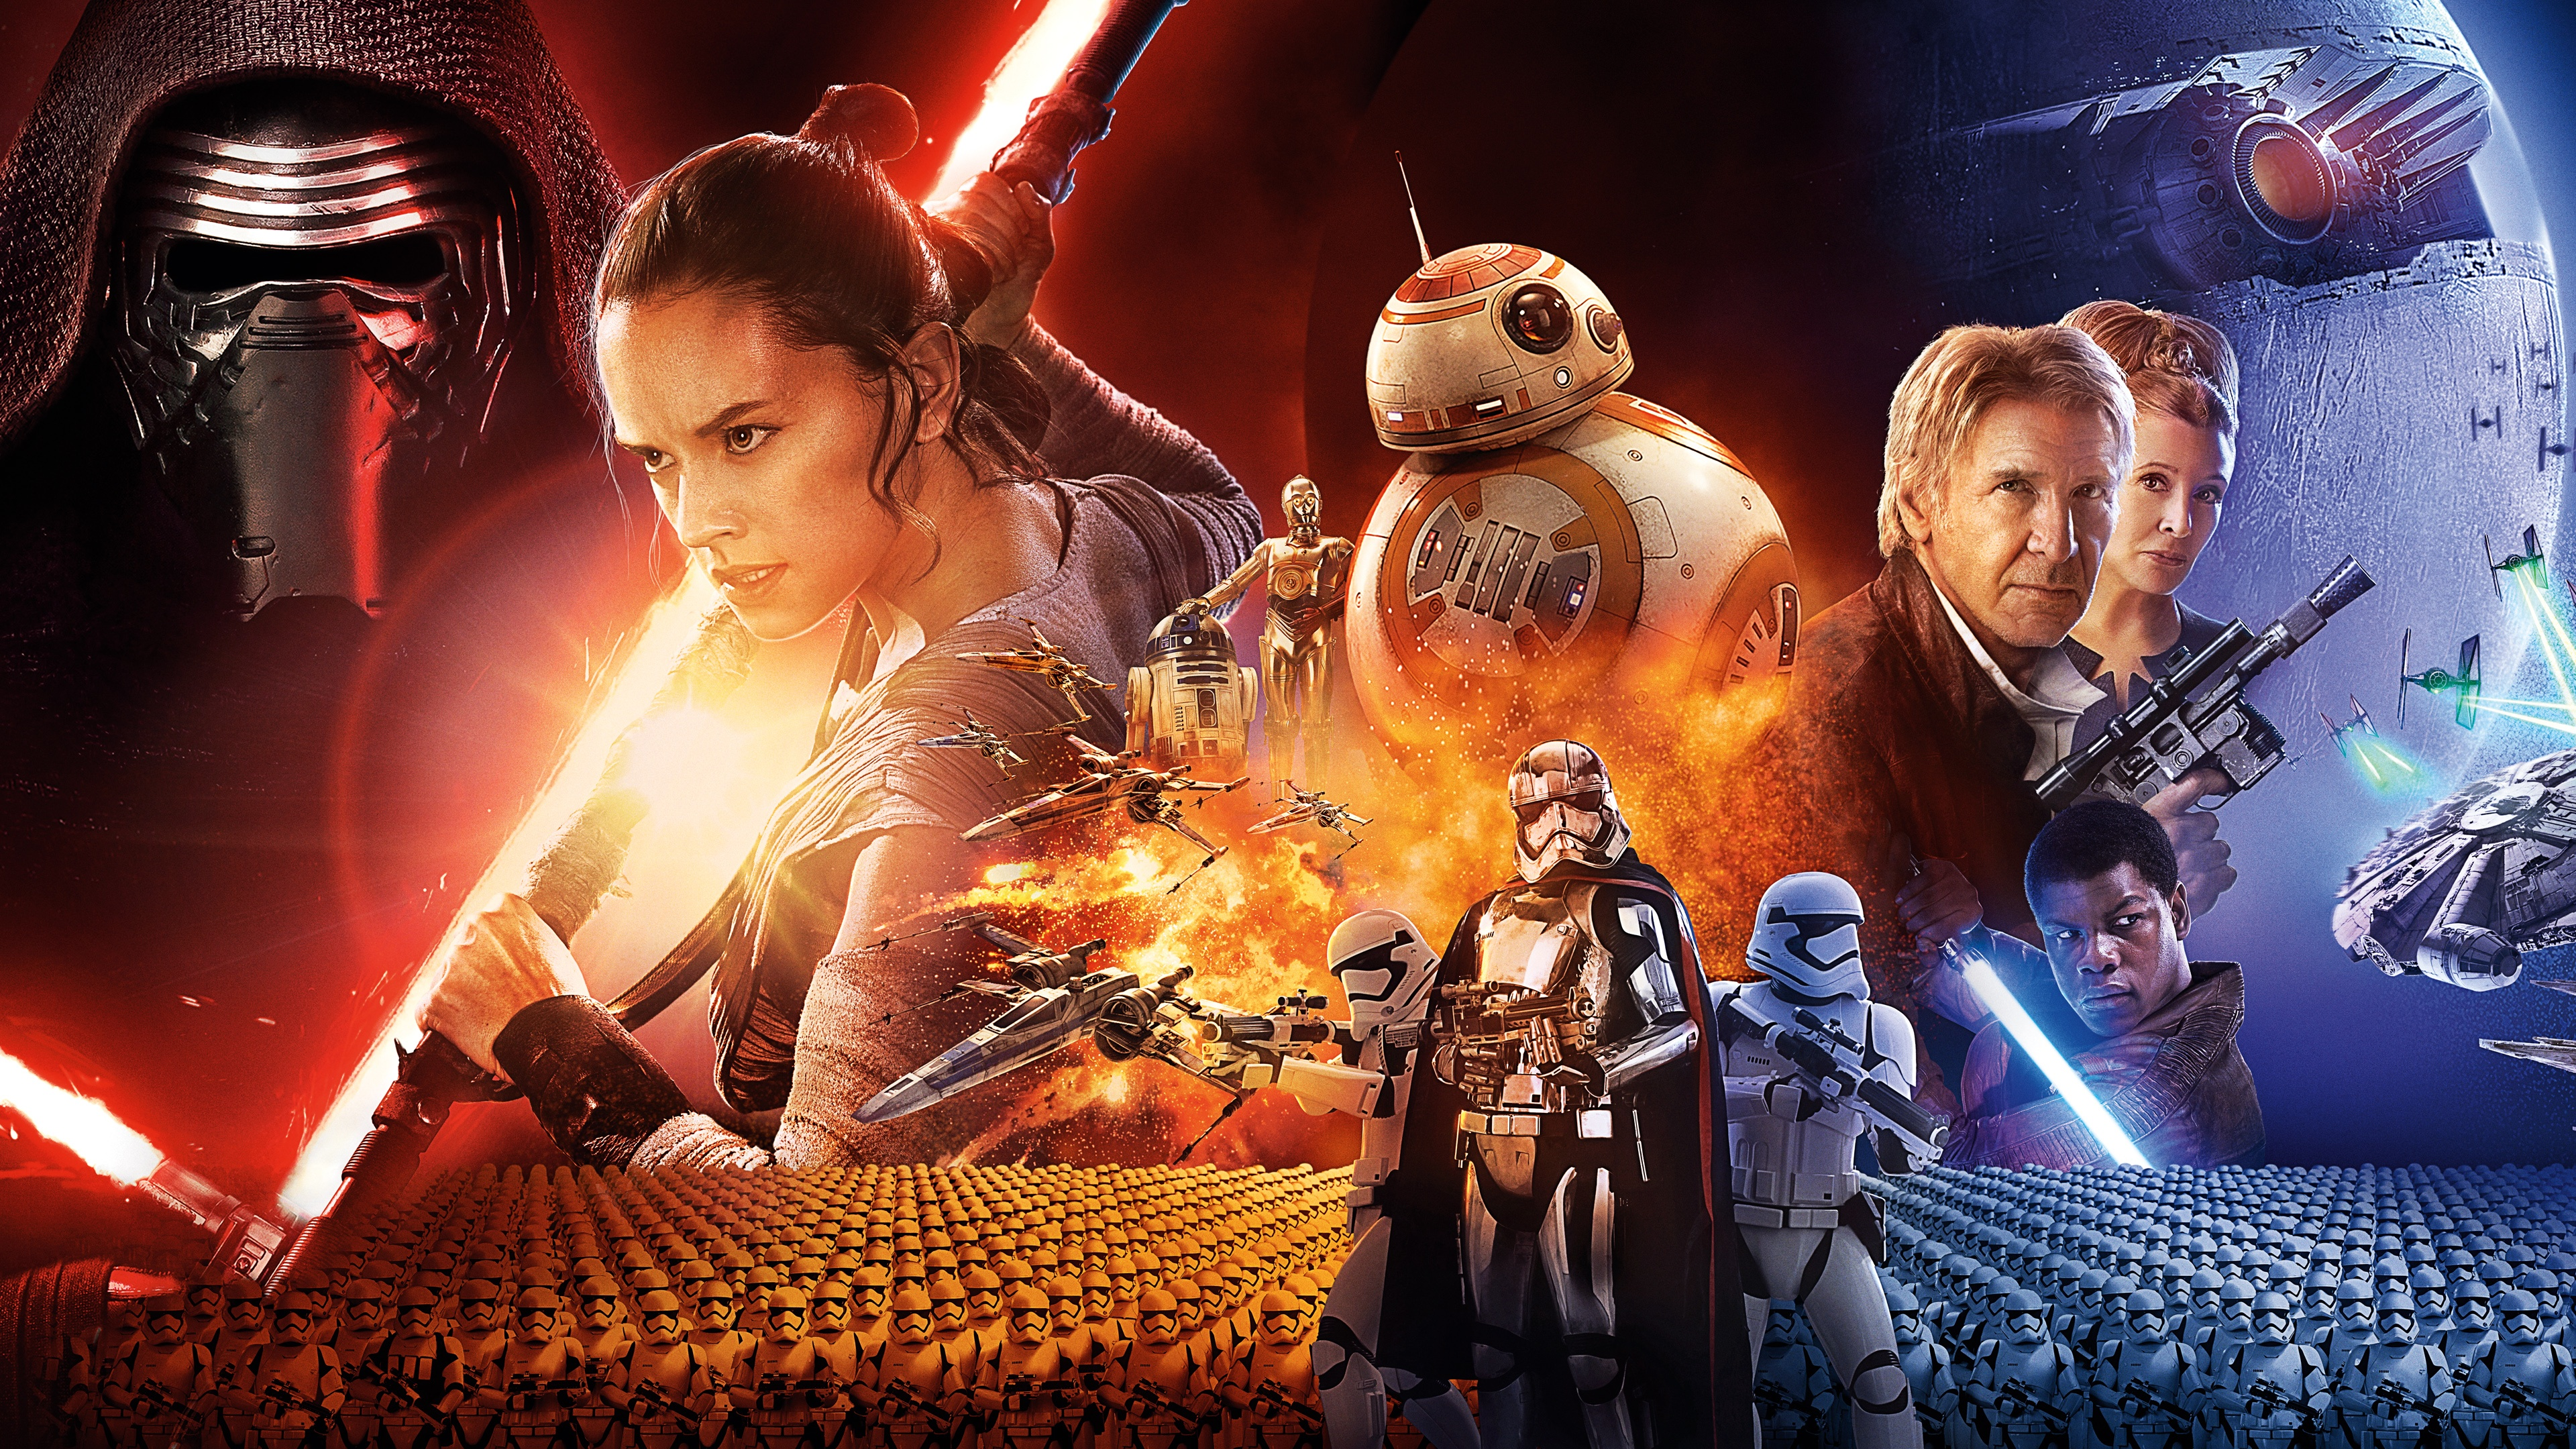 star wars the force awakens wallpapers high quality